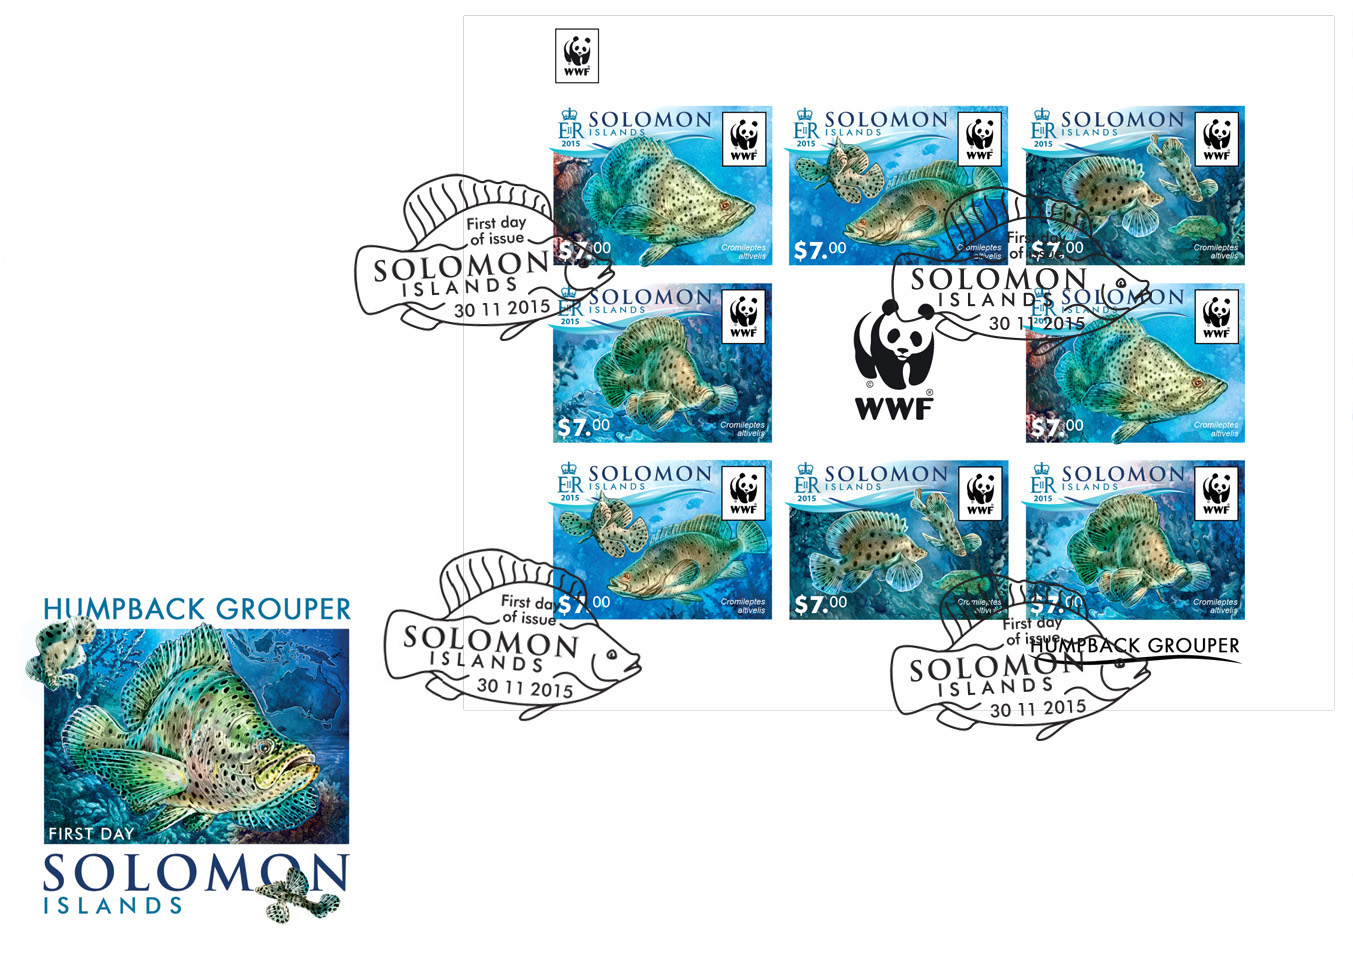 WWF – Fish (FDC imperf.) - Issue of Solomon islands postage stamps